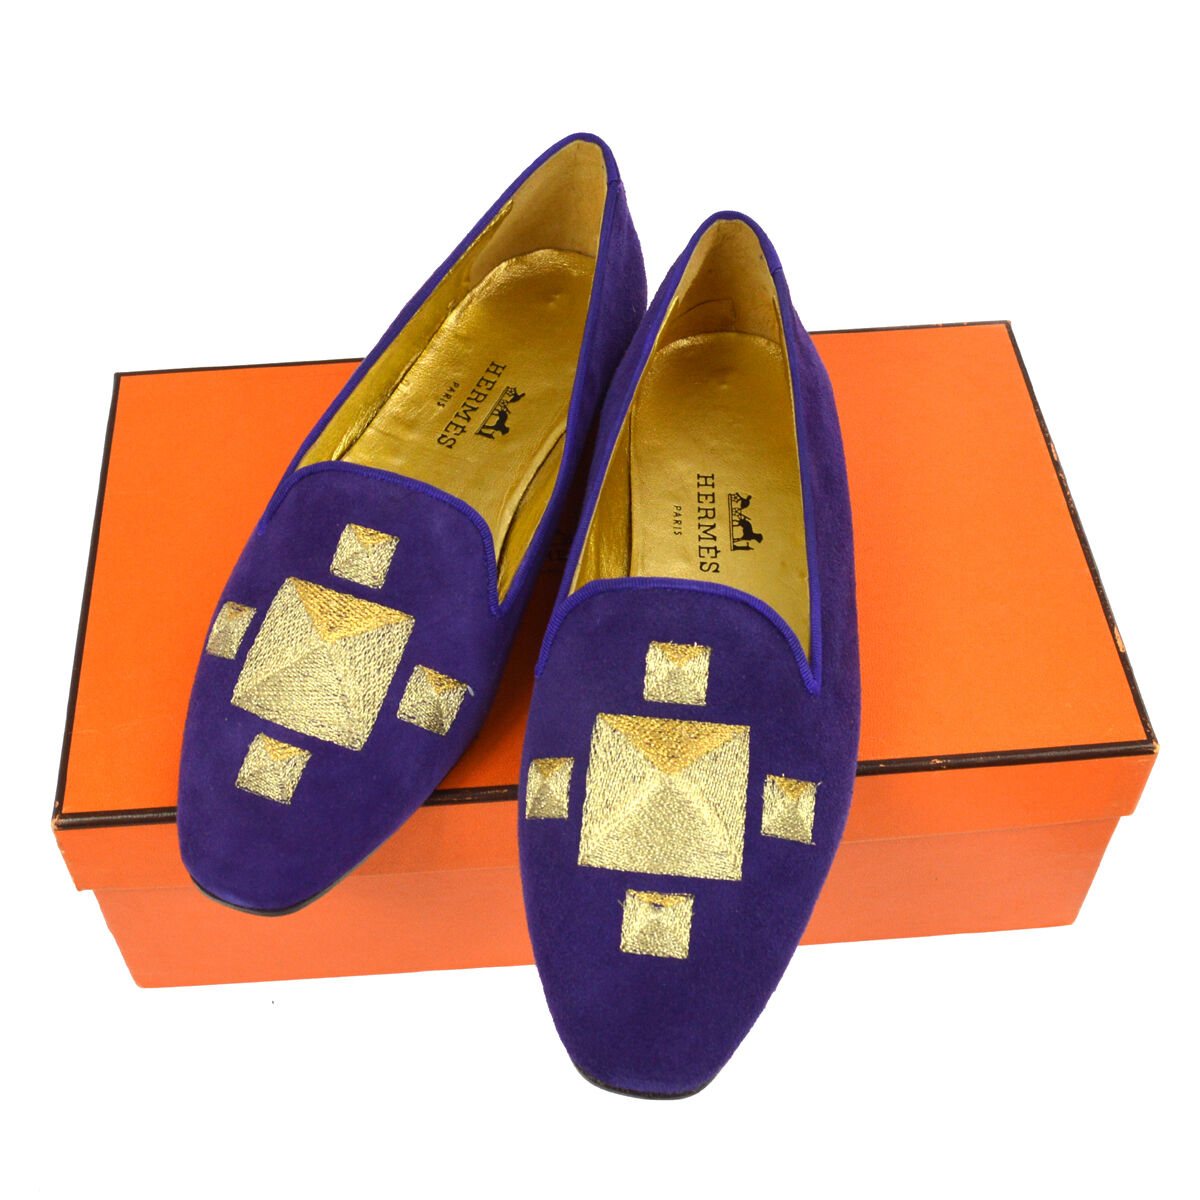 Authentic HERMES H Embroidery Flat Purple Shoes Pumps Purple Flat Suede Vintage TG00285 2e1f04